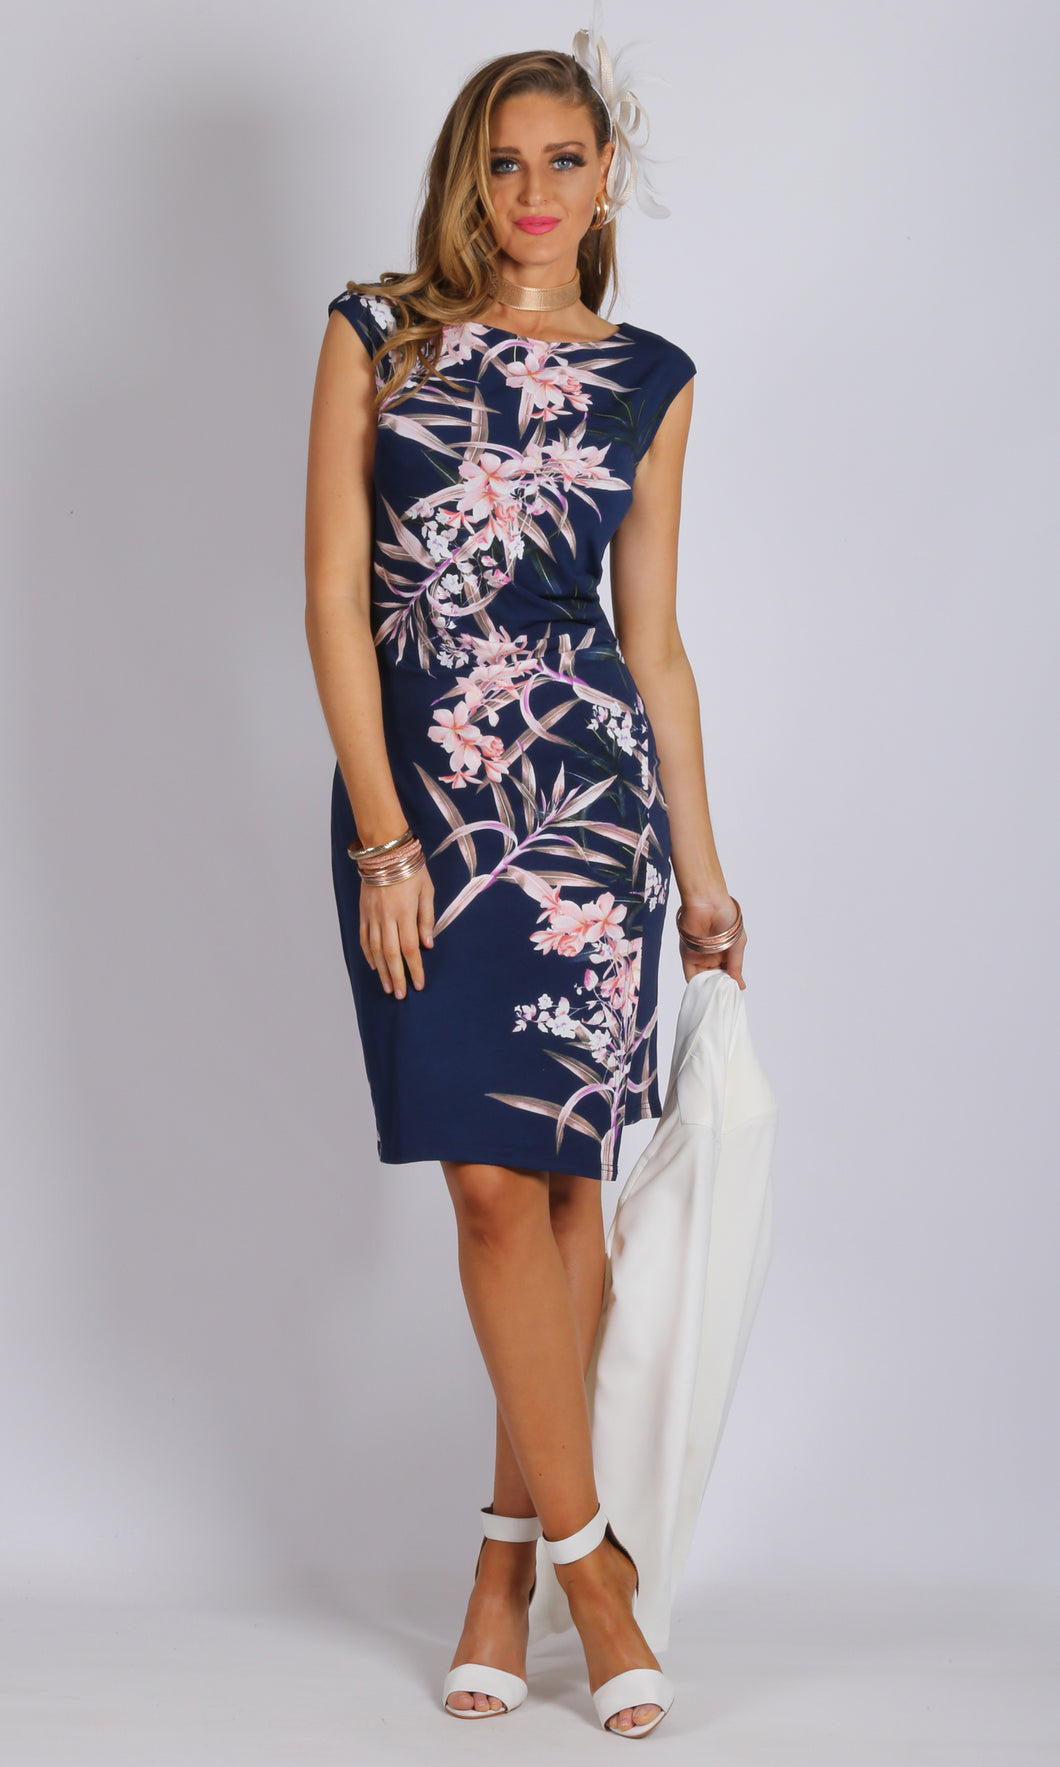 JS0024-33TB Navy Floral Tulip Dress (Pack)